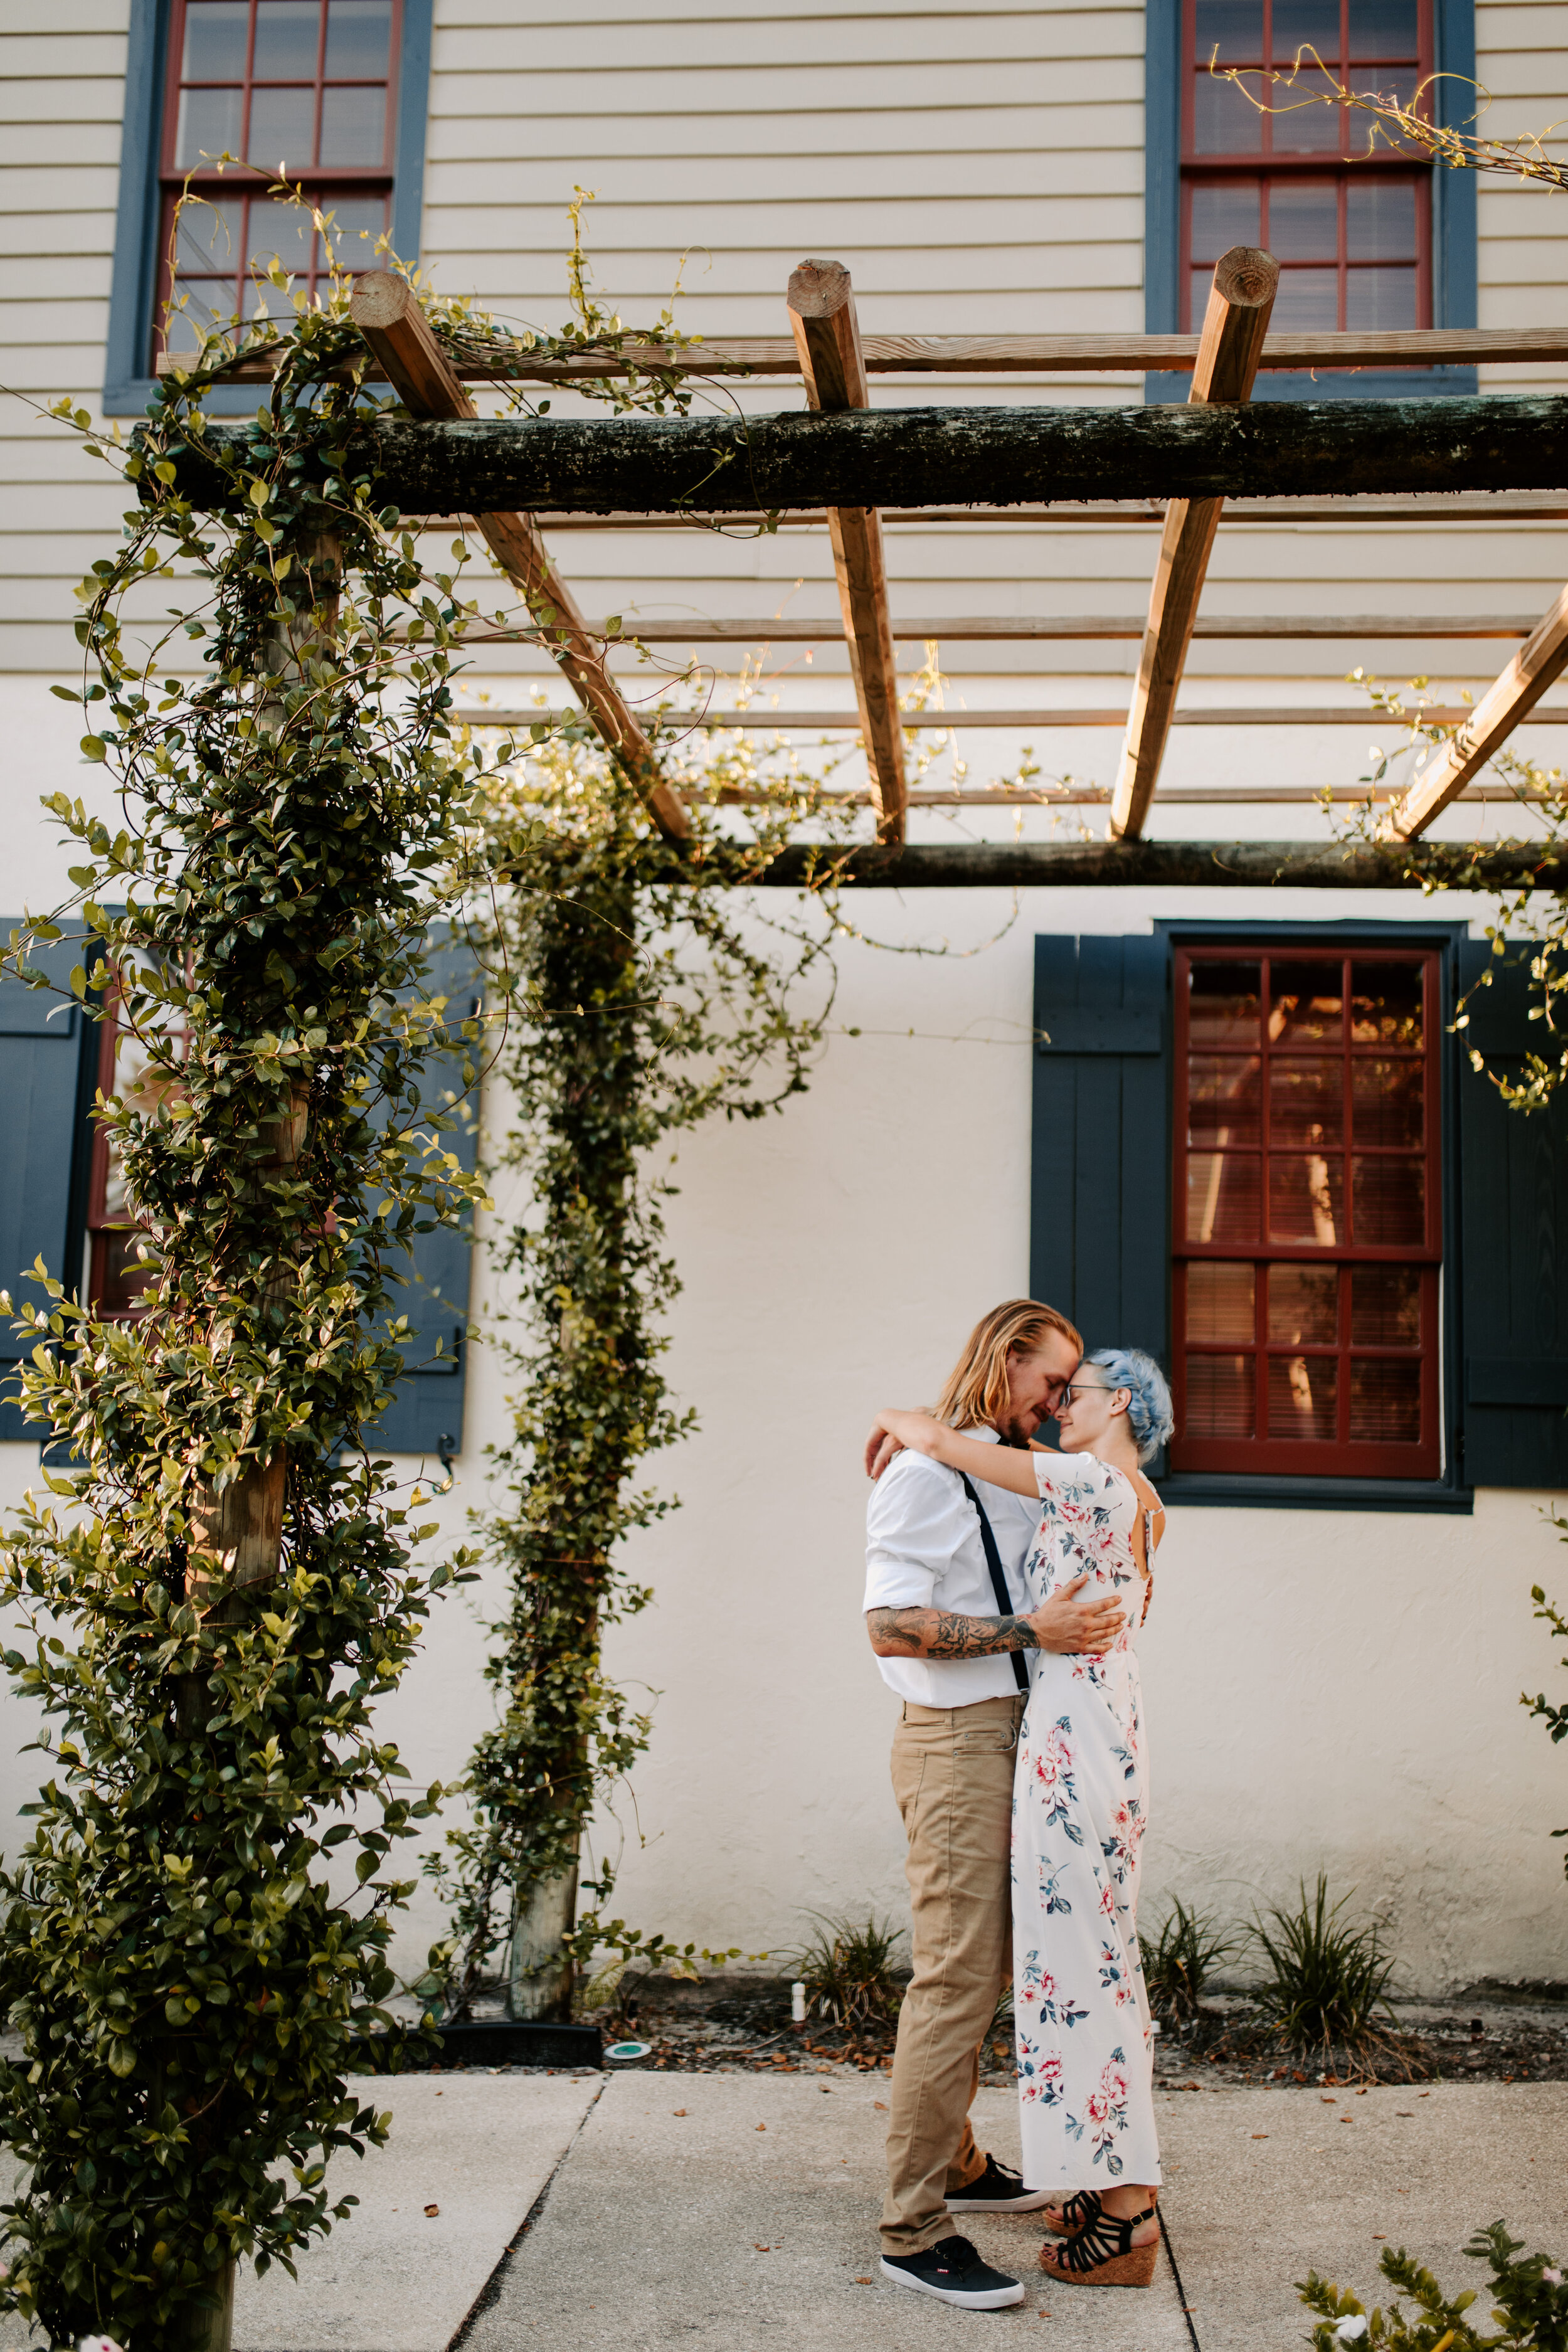 Ashalei_+_Clay_-_Native_Expressions_-_Downtown_St_Augustine_-_Engagement_Session-68.jpg